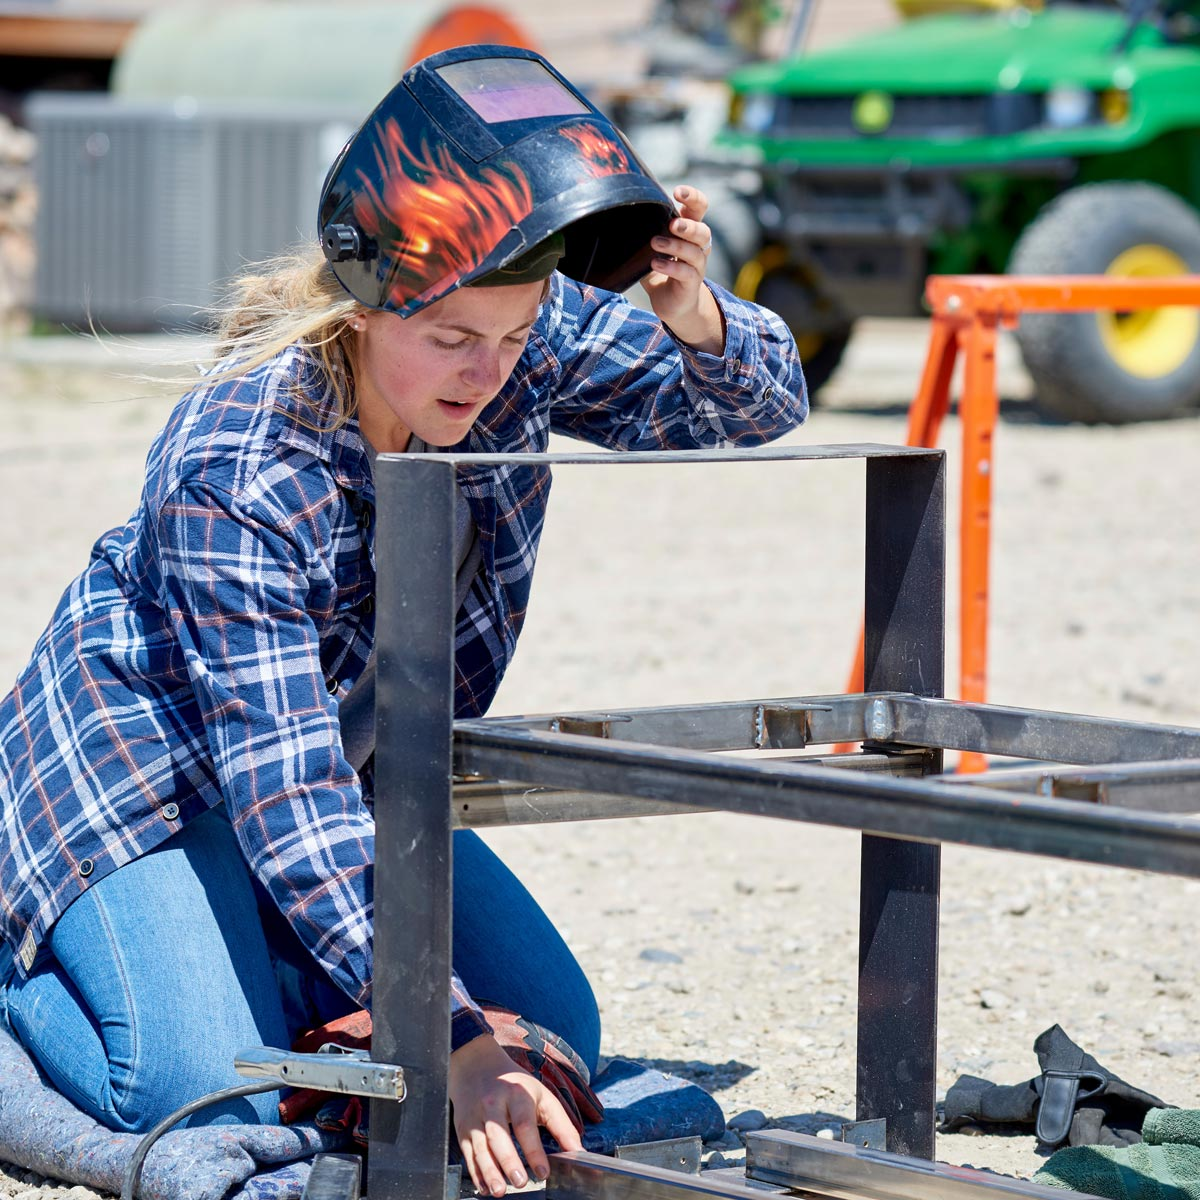 A student lifts her welding mask to inspect her work.